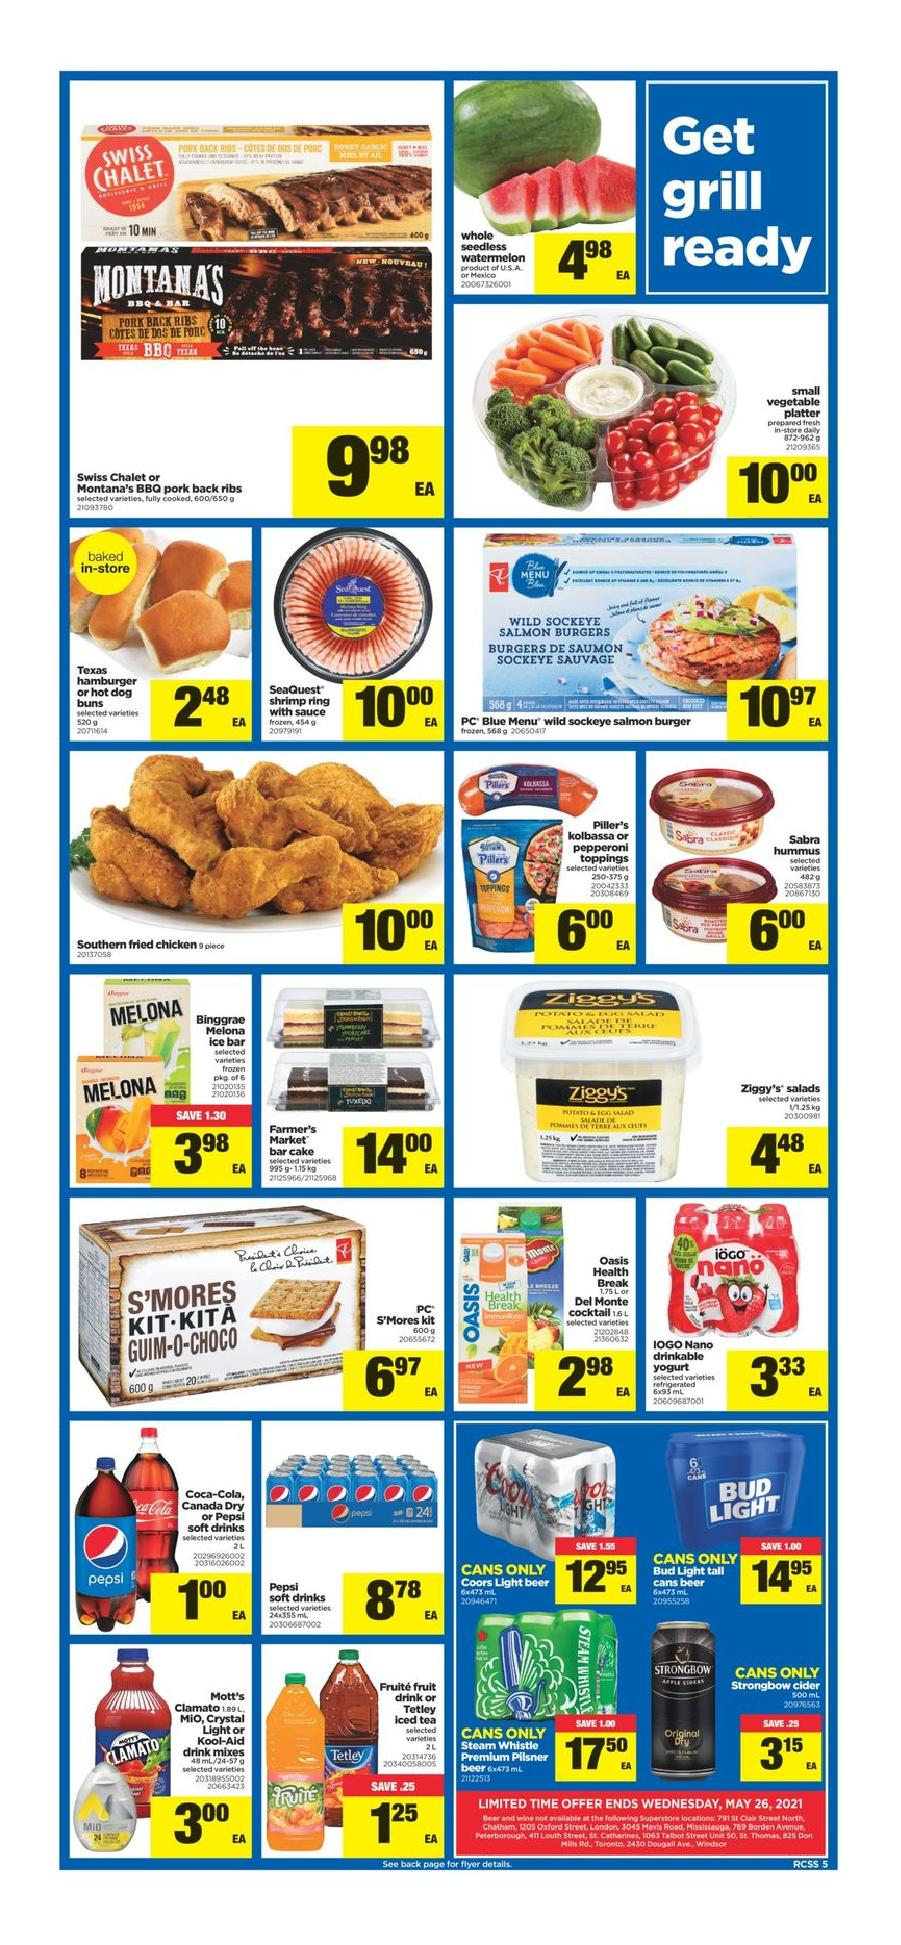 07 Superstore ON Flyer May 20 May 26 2021